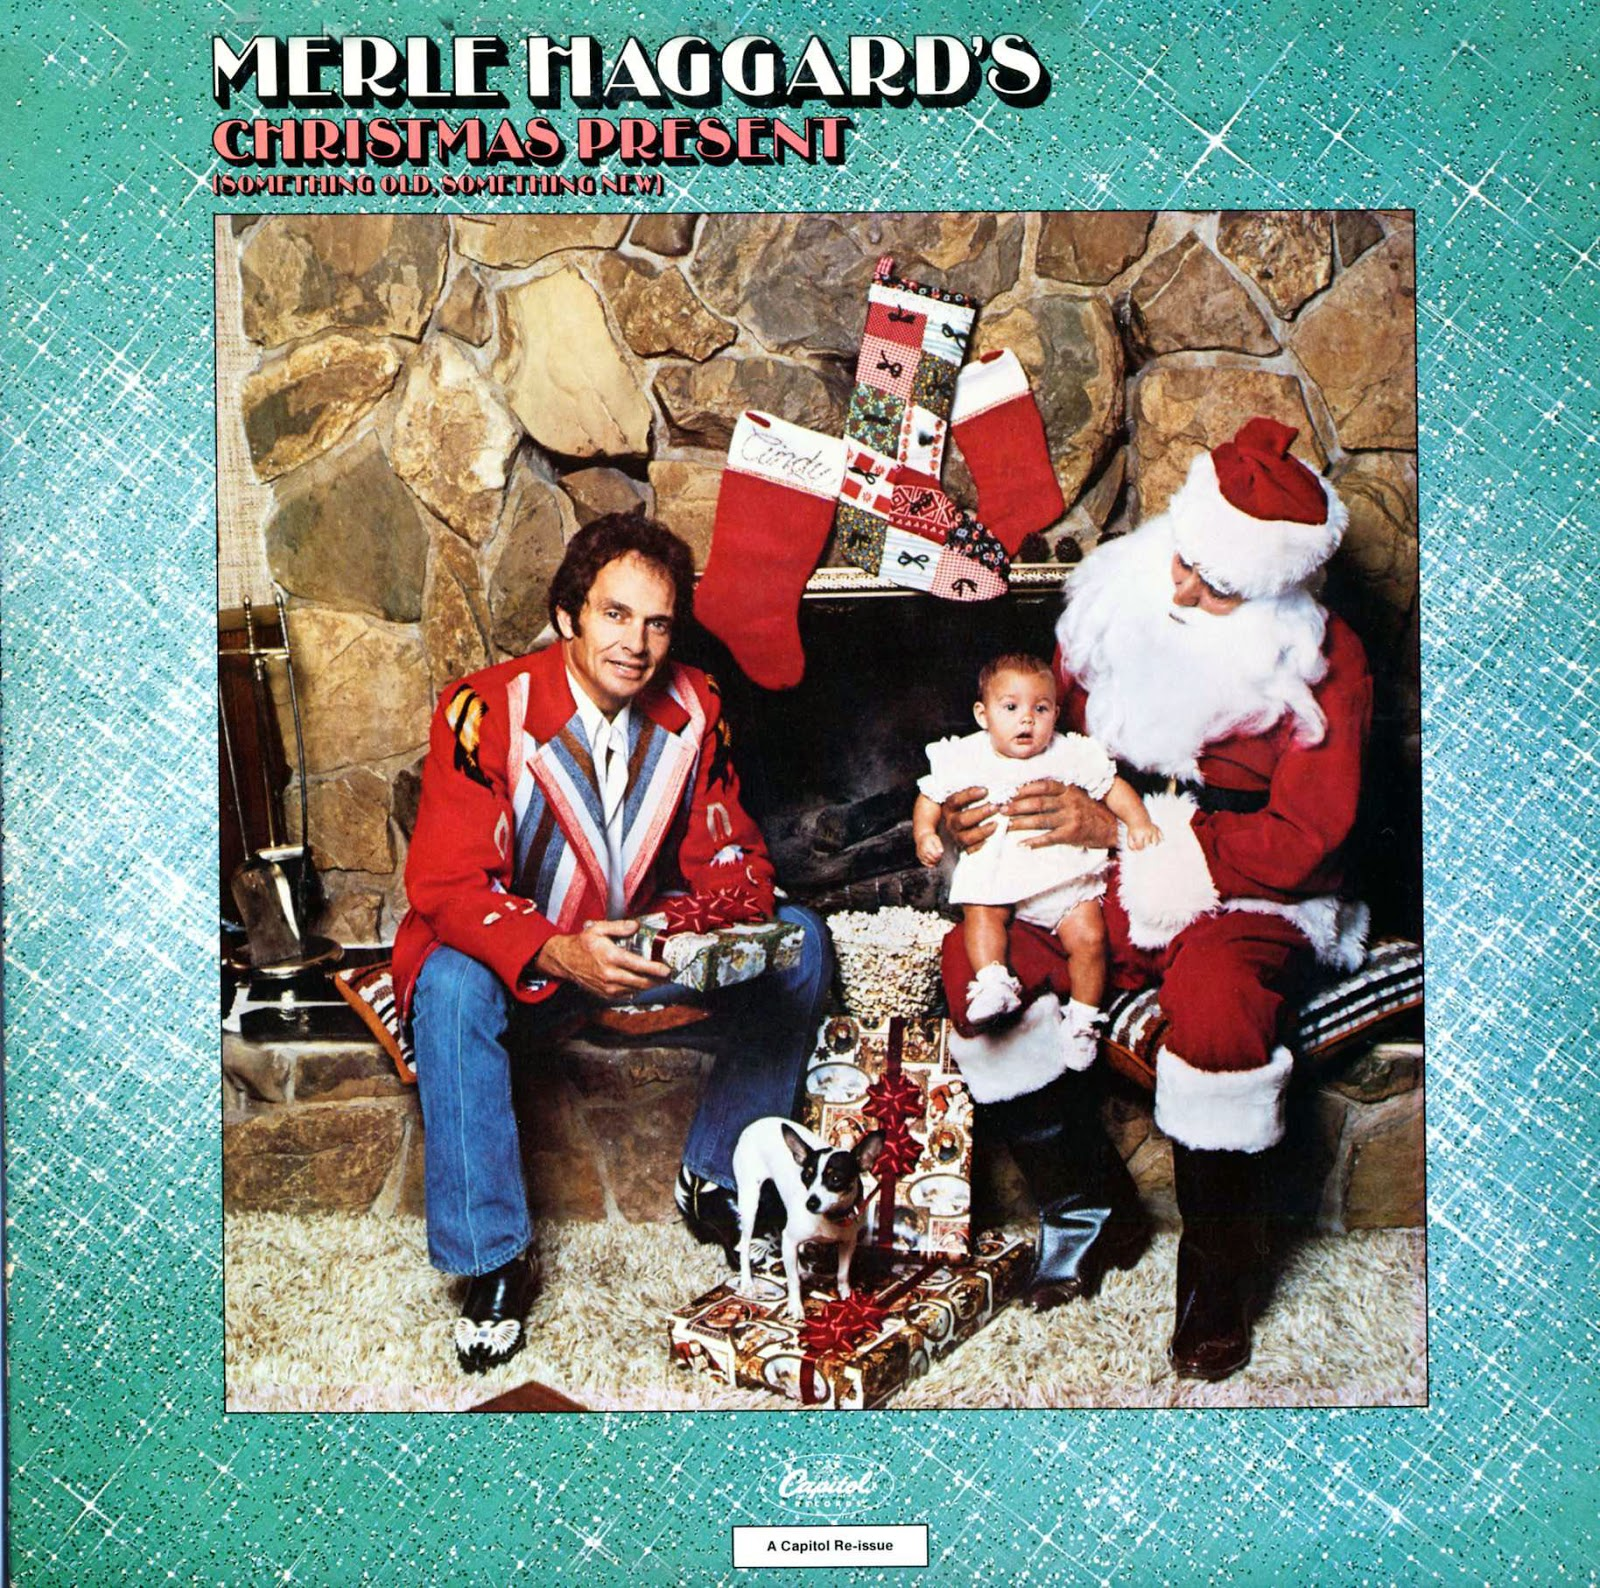 EARLY \'70S RADIO: The 25 Biggest Christmas Singles of the Early \'70